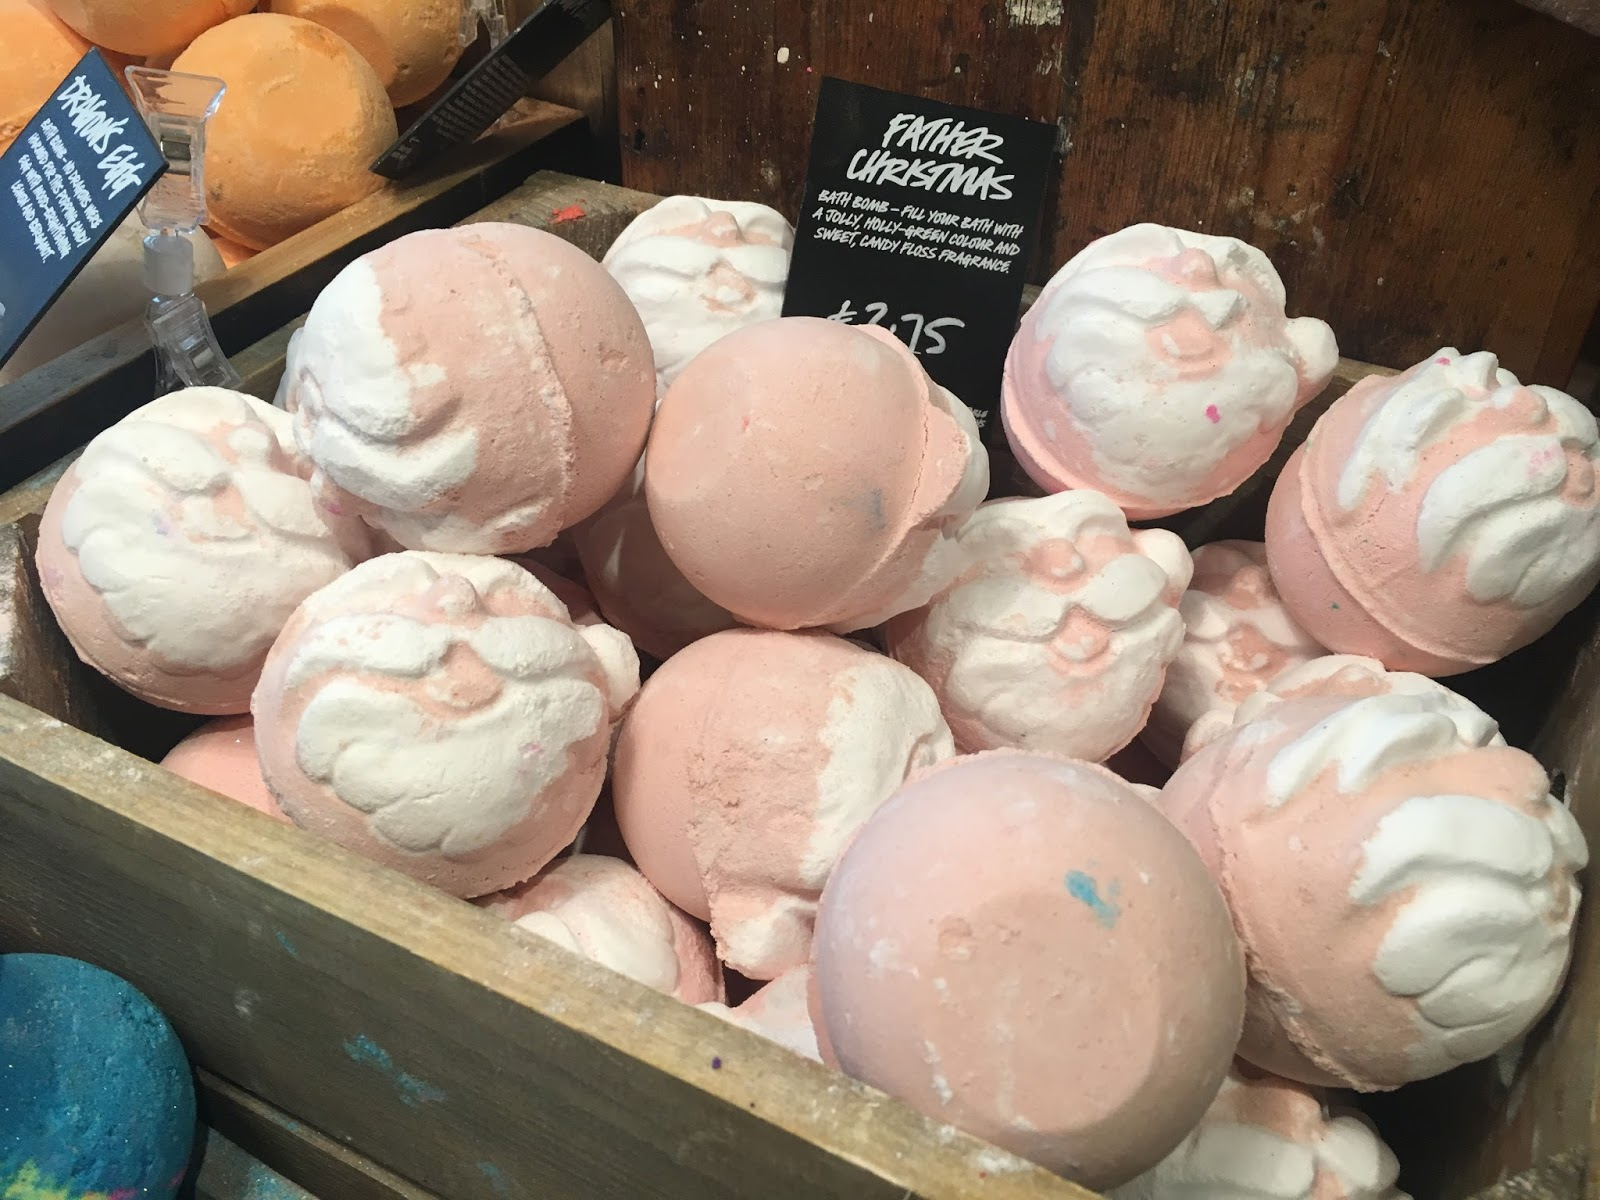 lush-father-christmas-bath-bomb